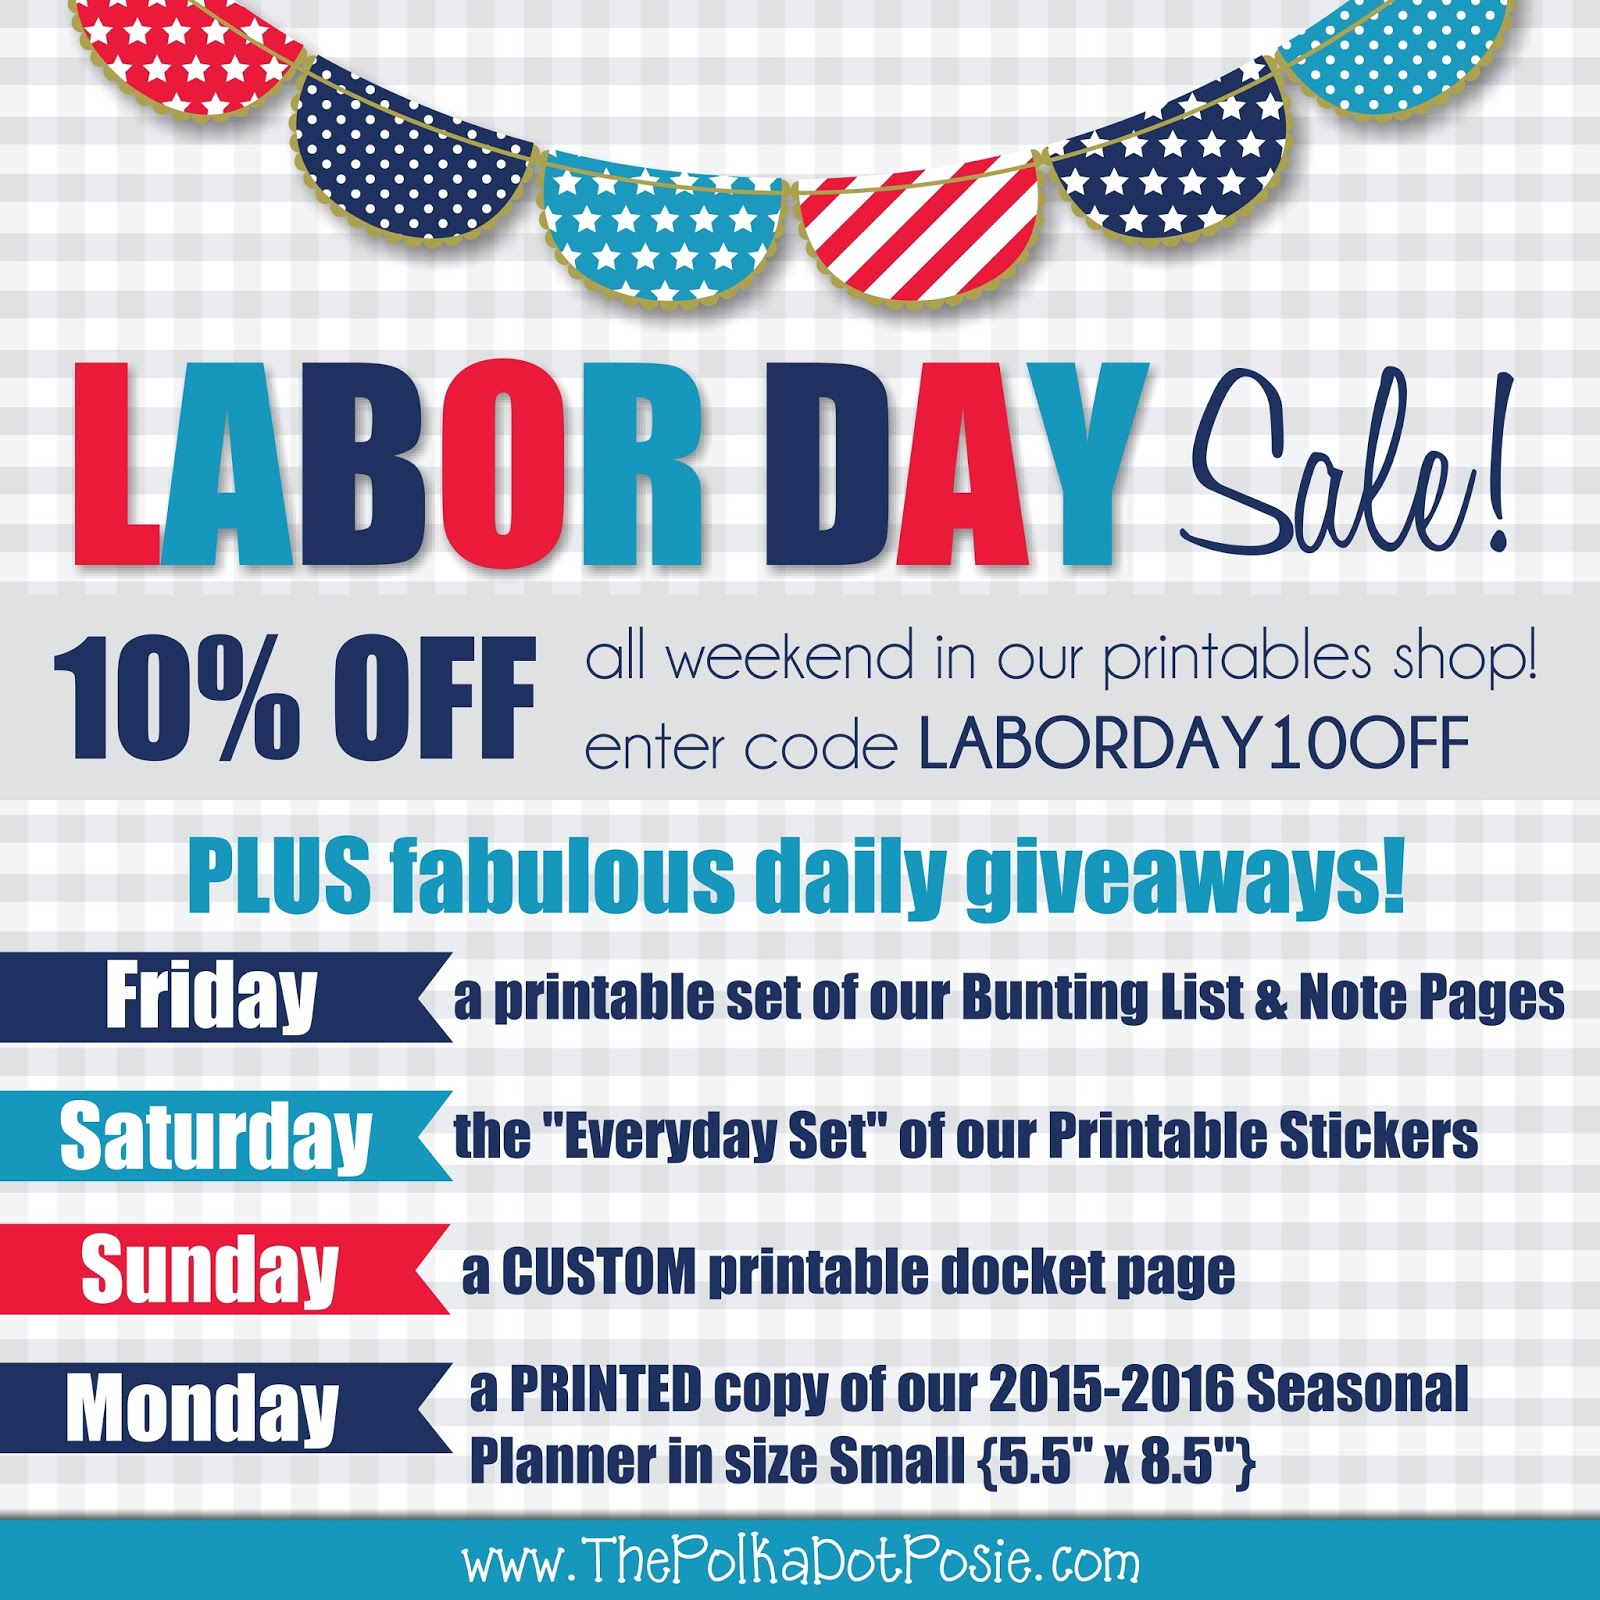 Labor Day Weekend Sale: The Polka Dot Posie: Labor Day Weekend SALE & Giveaways